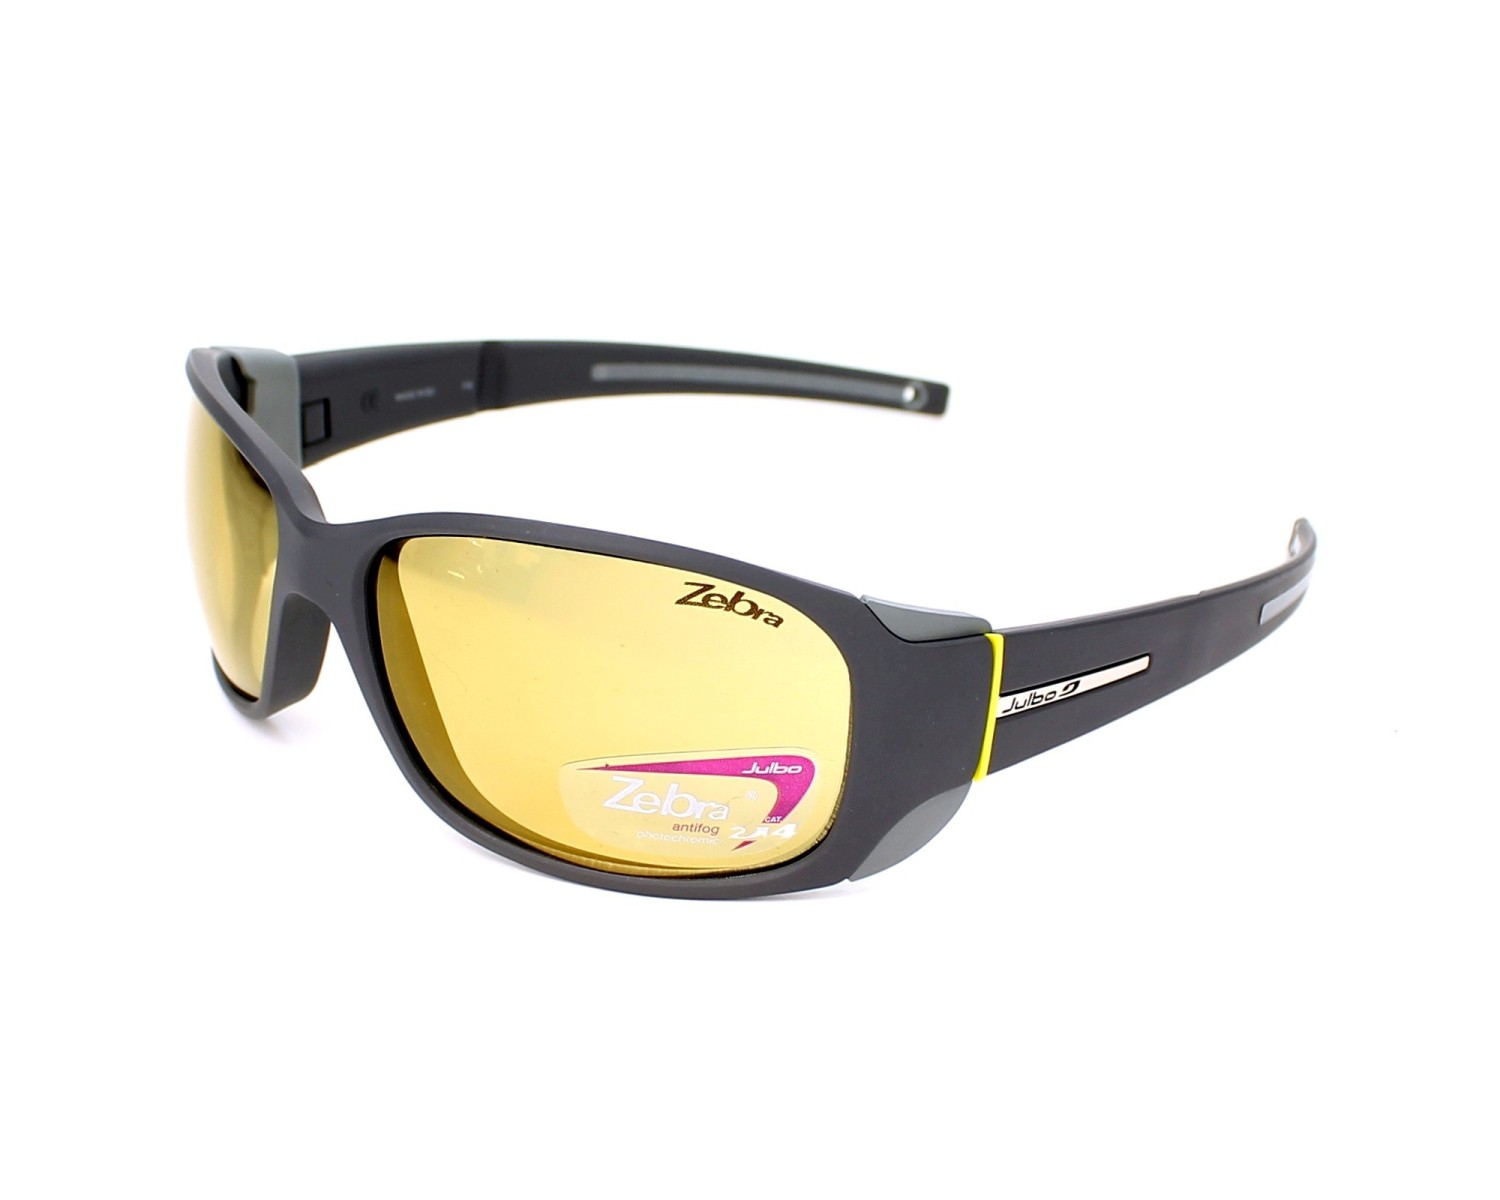 cdaba9de64cb Sunglasses Julbo J415 3121 - Grey Yellow profile view